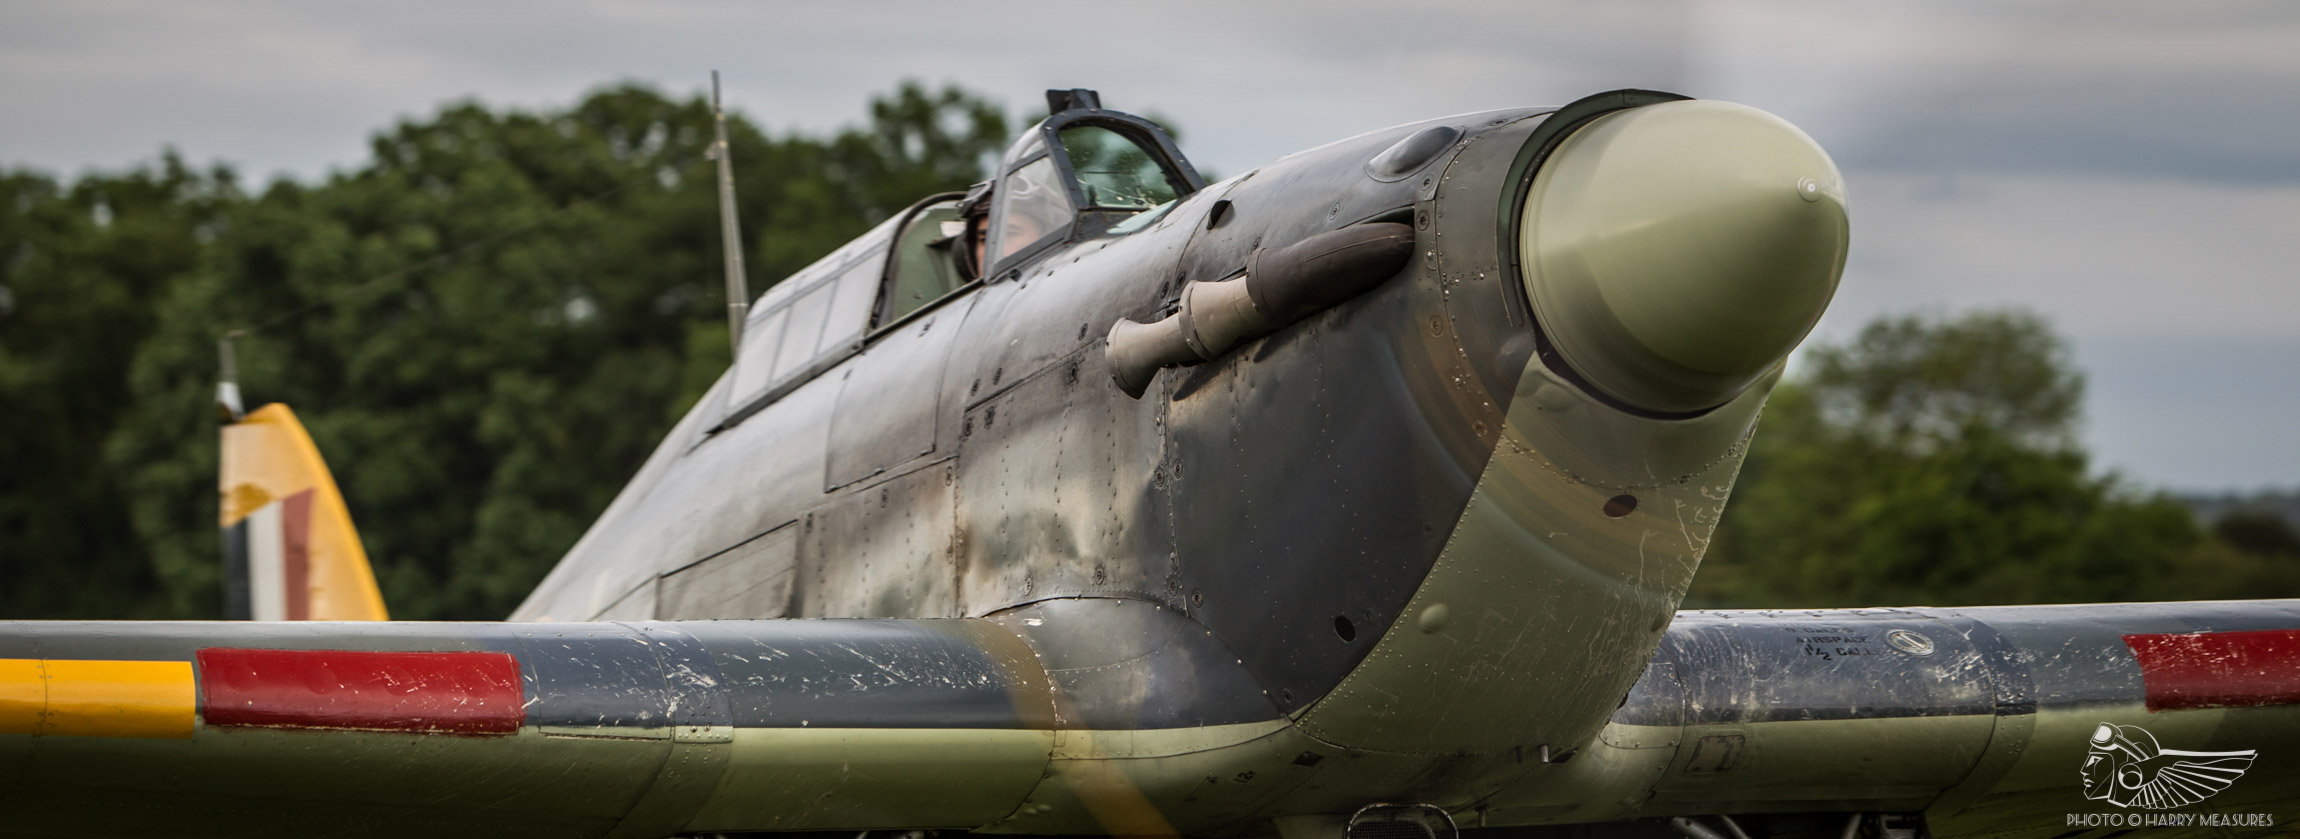 A welcome return for the Shuttleworth Evening Airshow